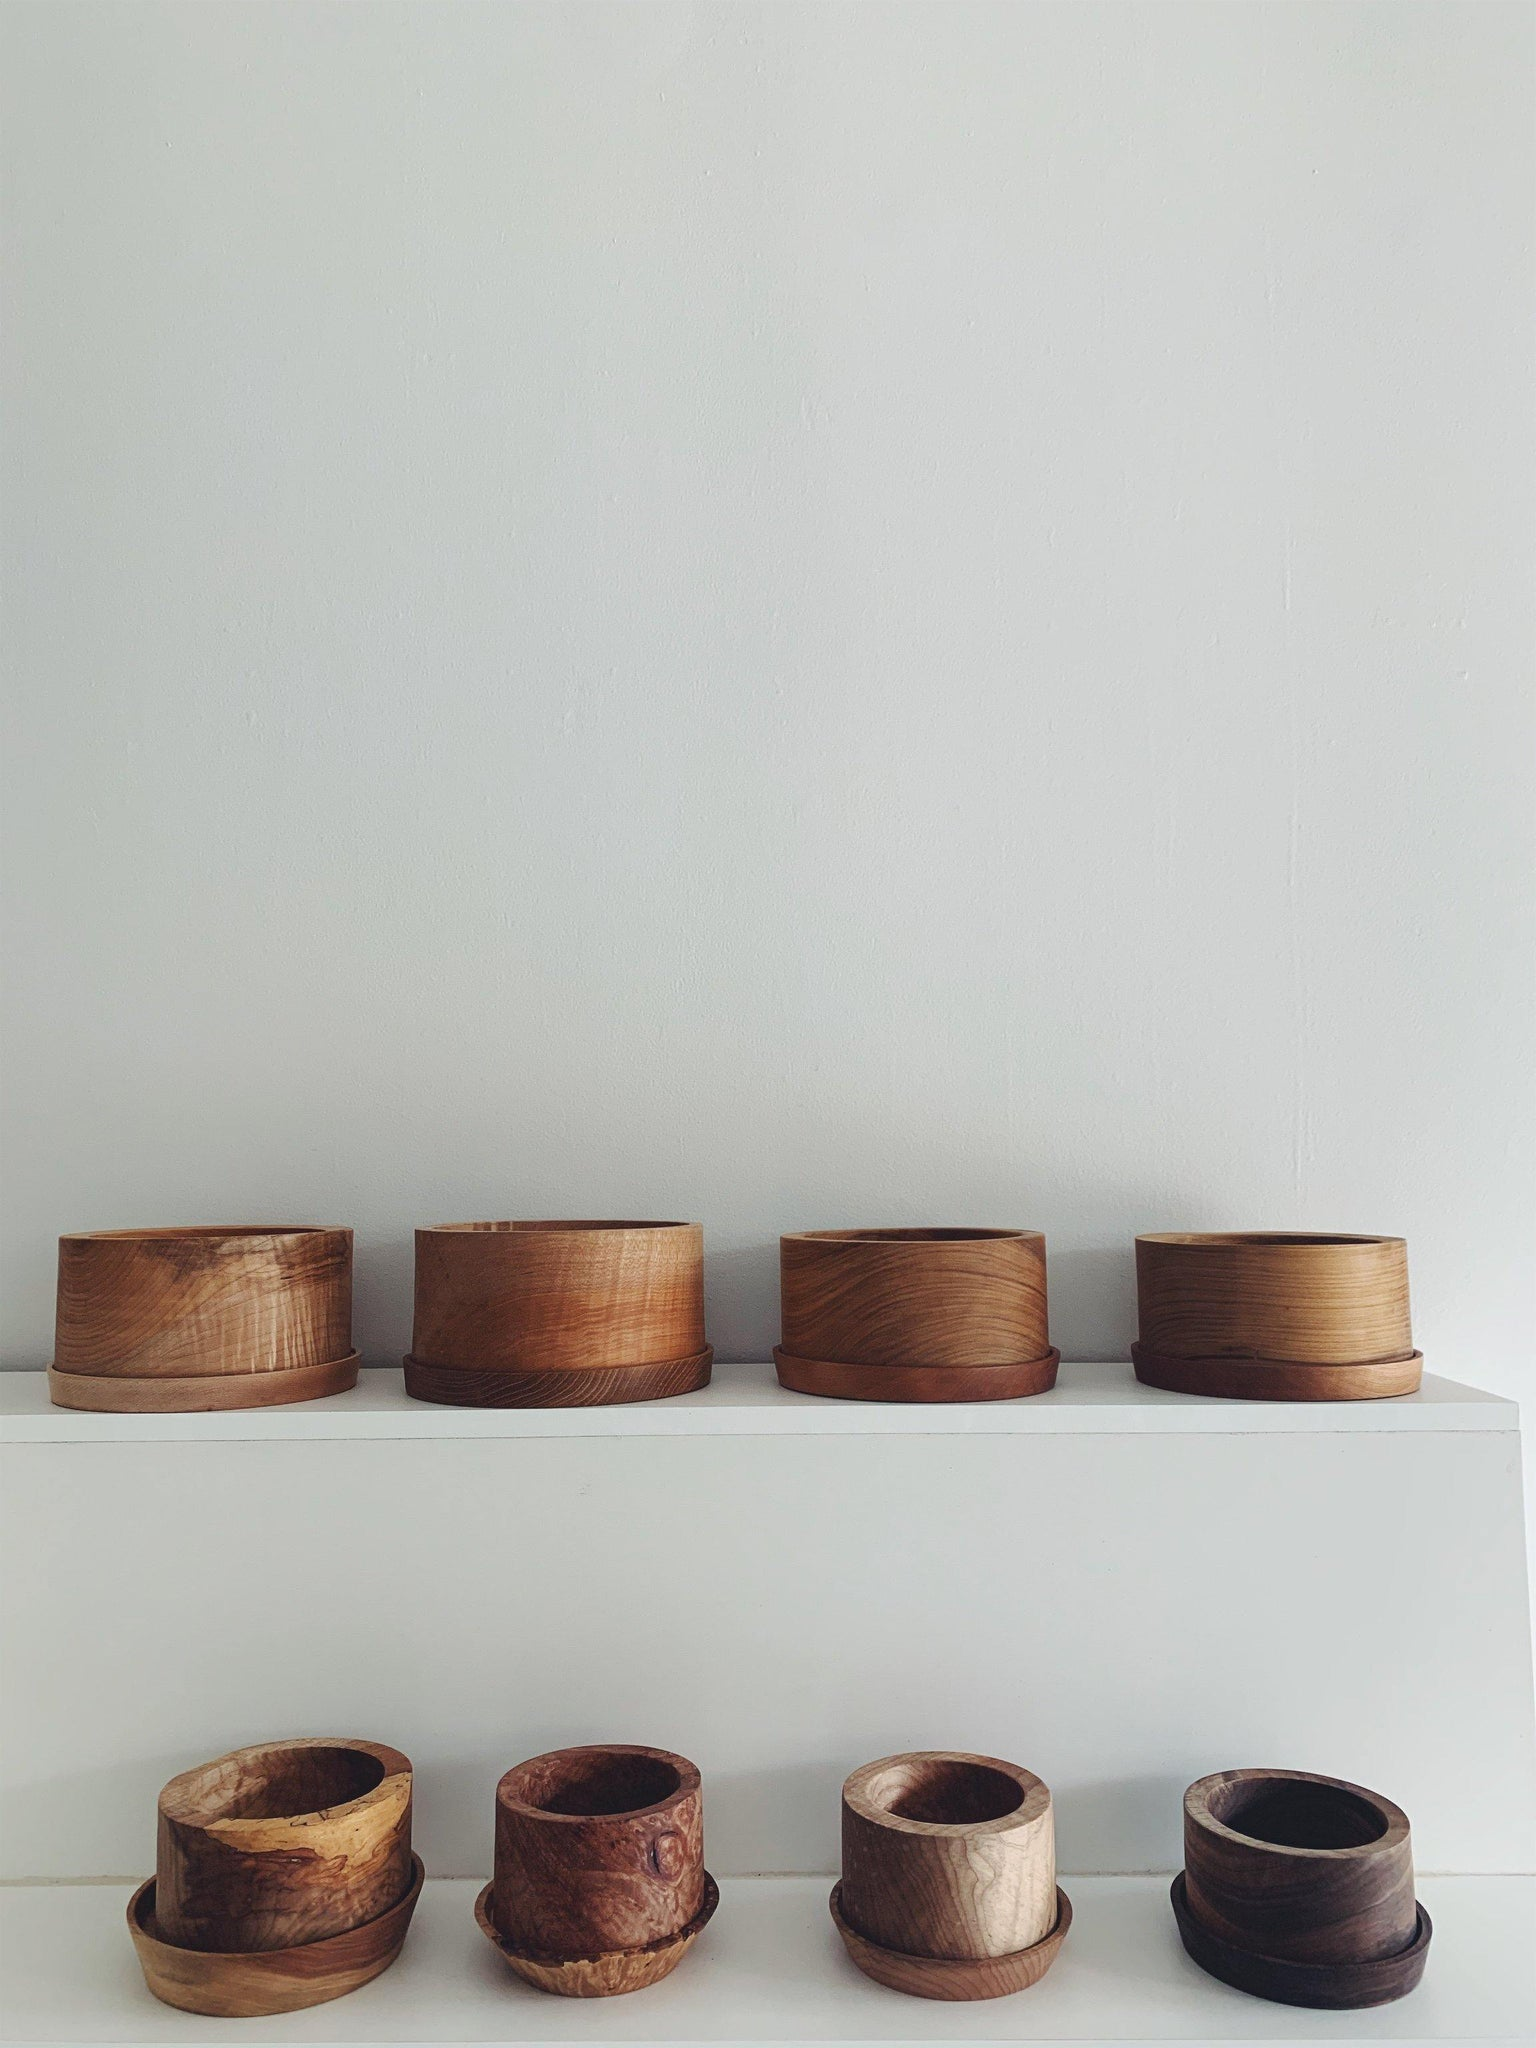 Elise McLauchlin Wood Pots with Tray